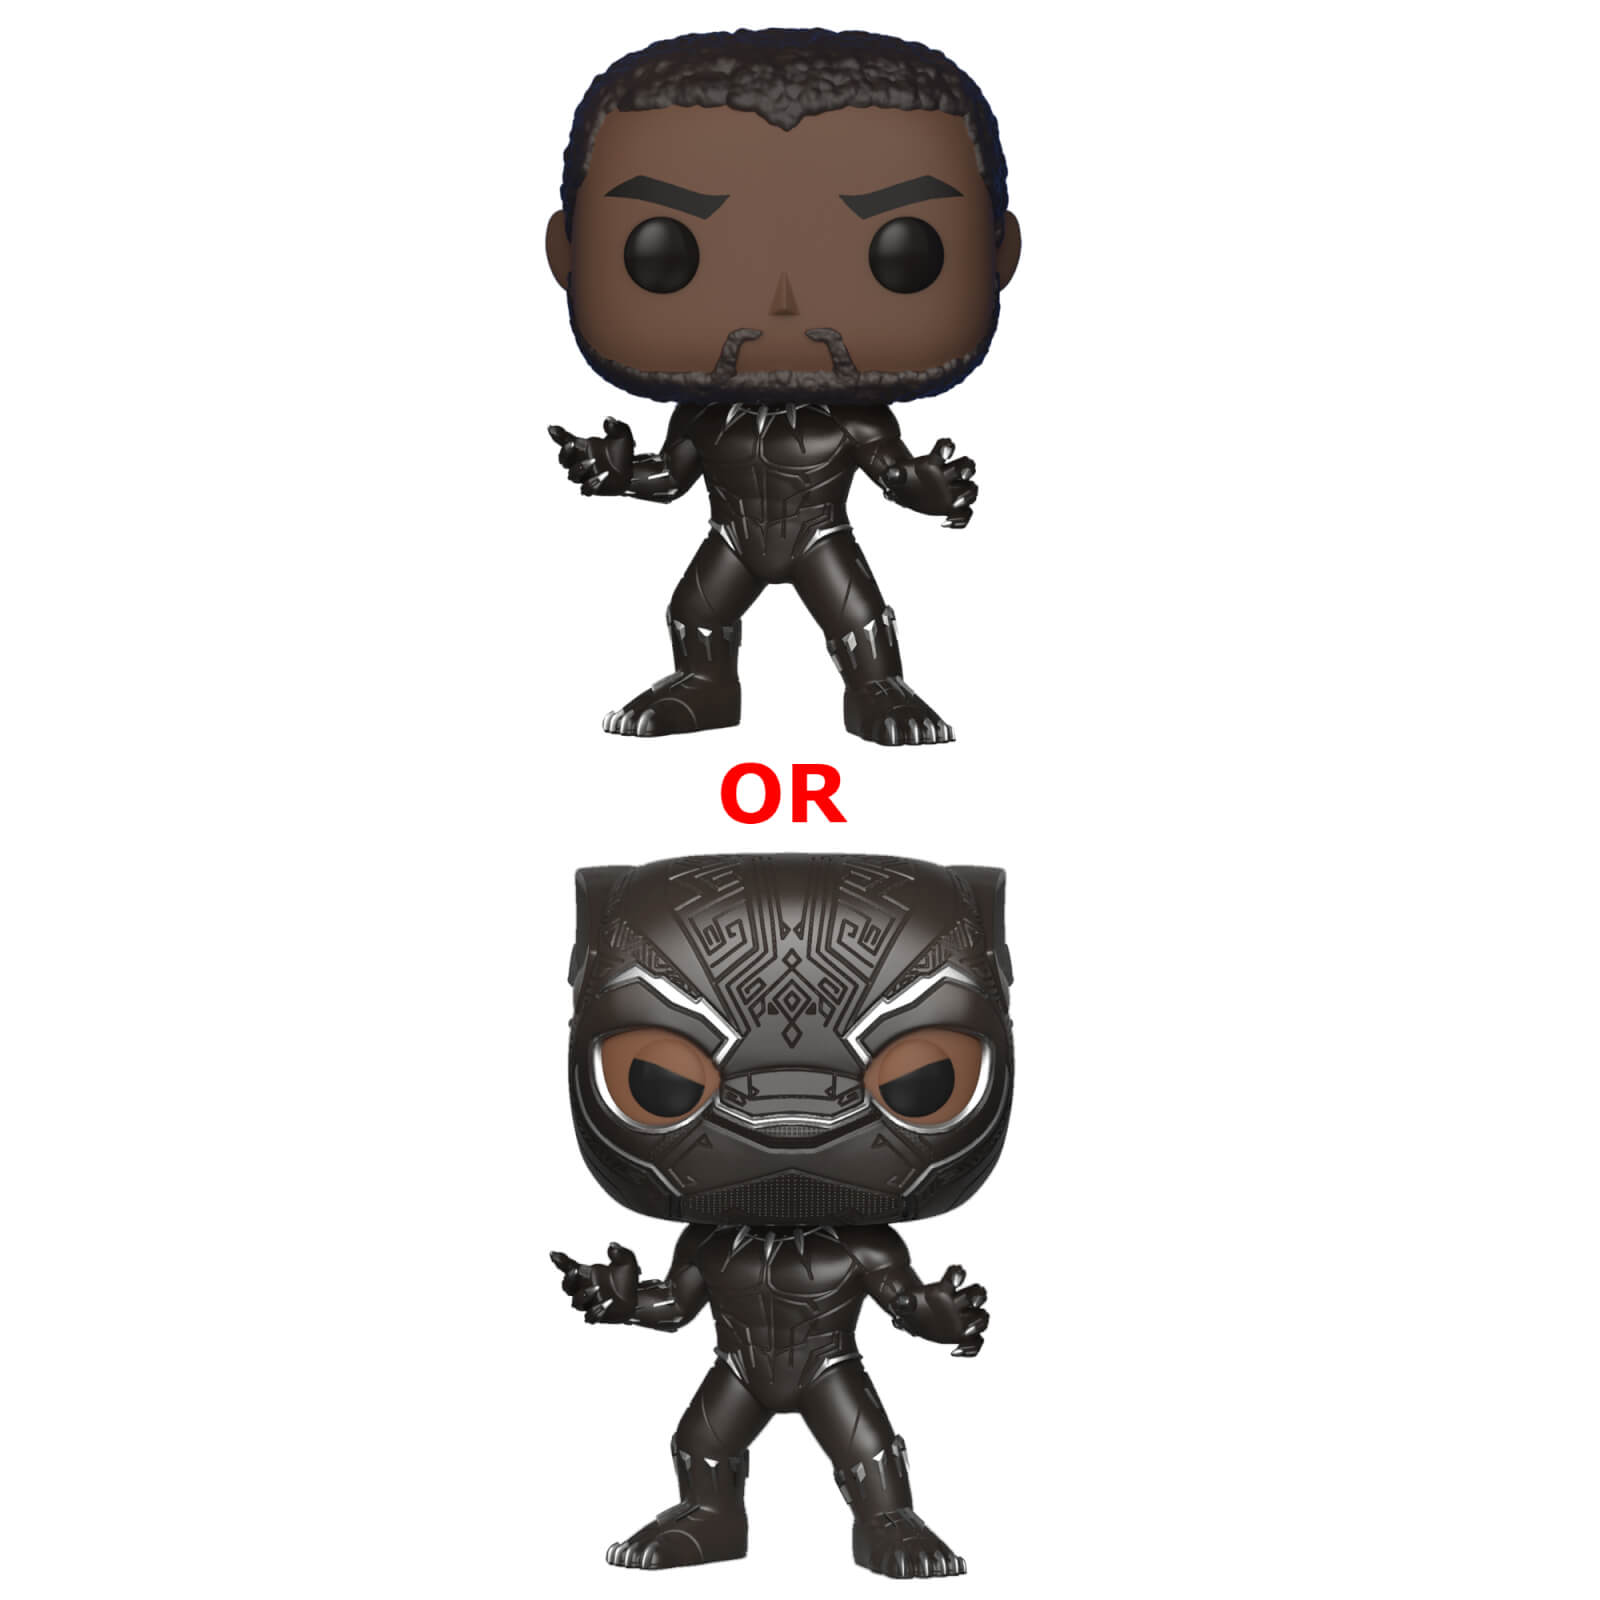 Black Panther Pop! Vinyl Figure